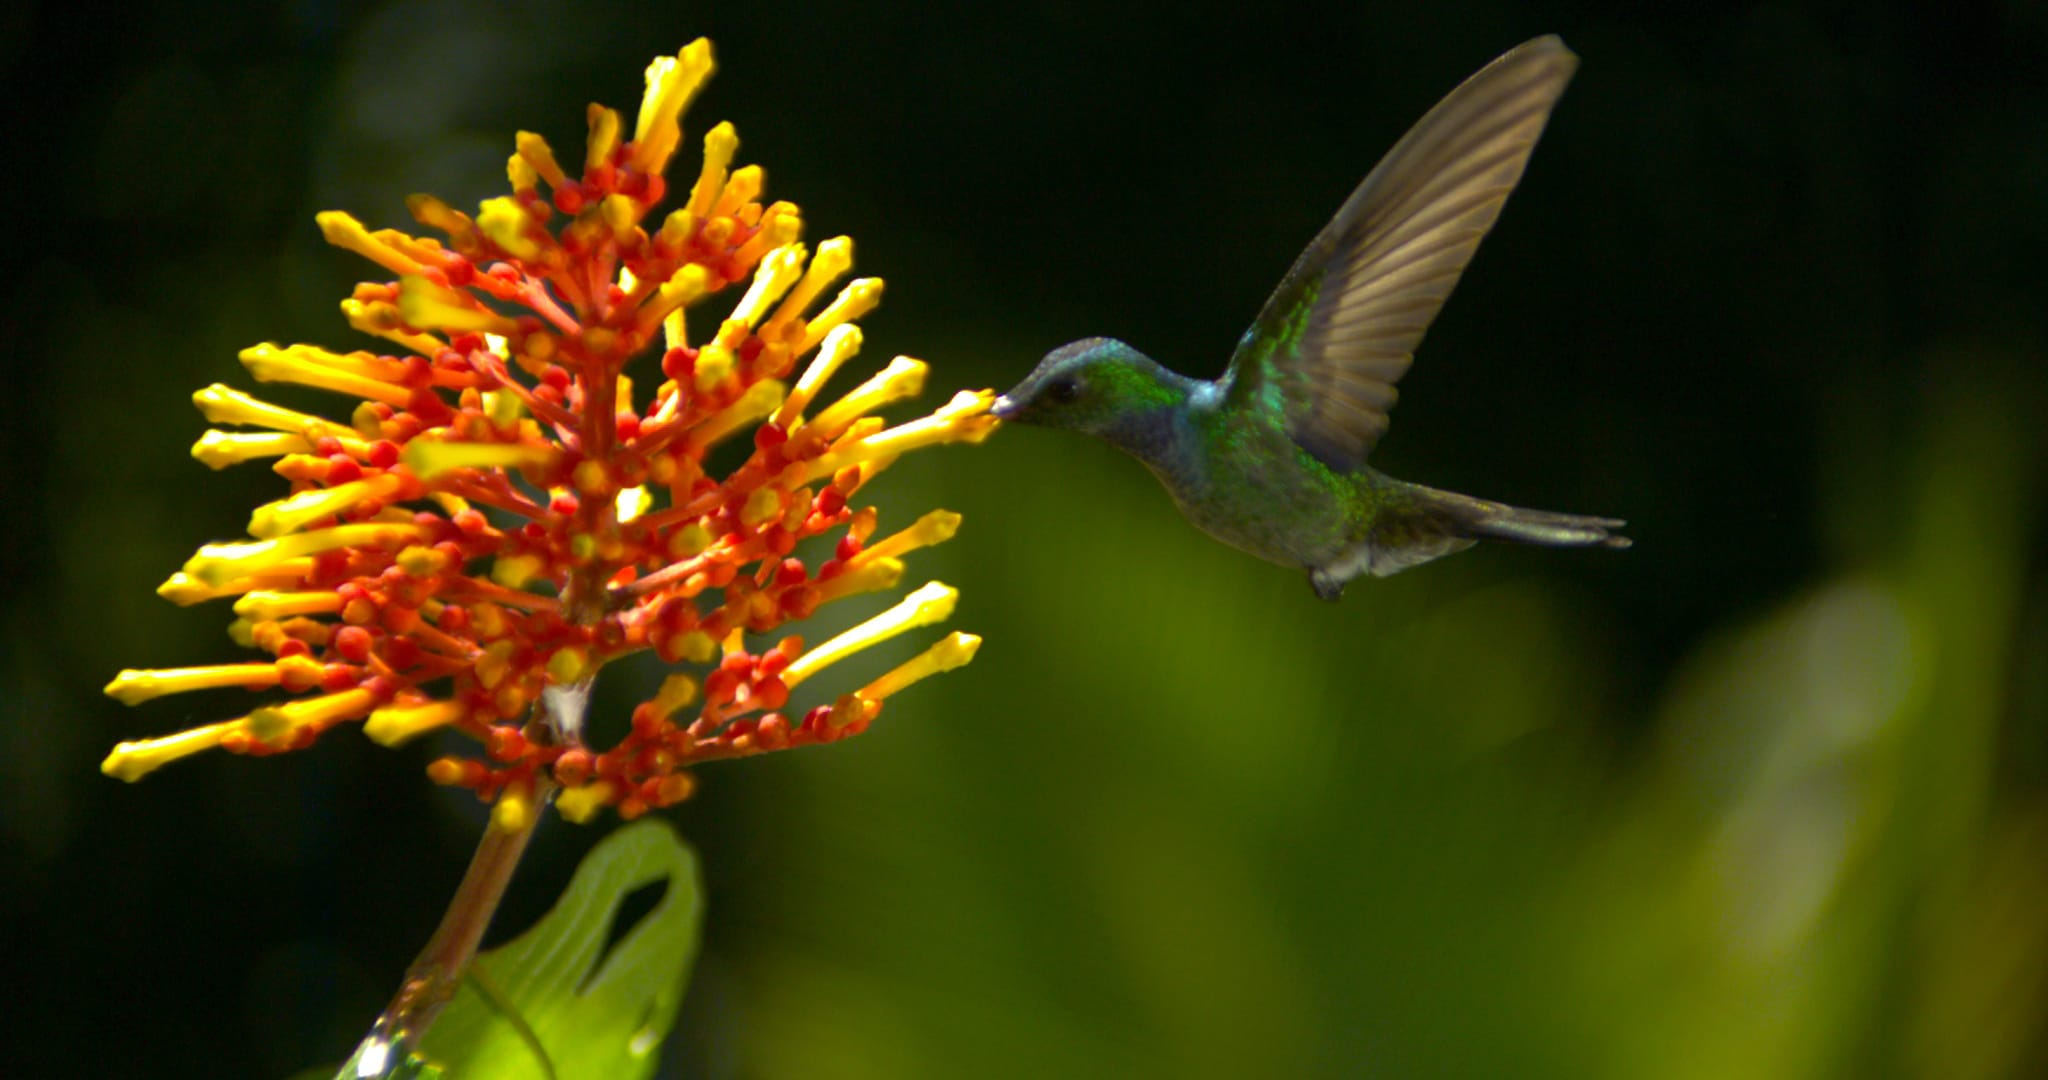 A male blue-chested hummingbird finds a budding Rubiaceae blossom to gracefully drink nectar from.